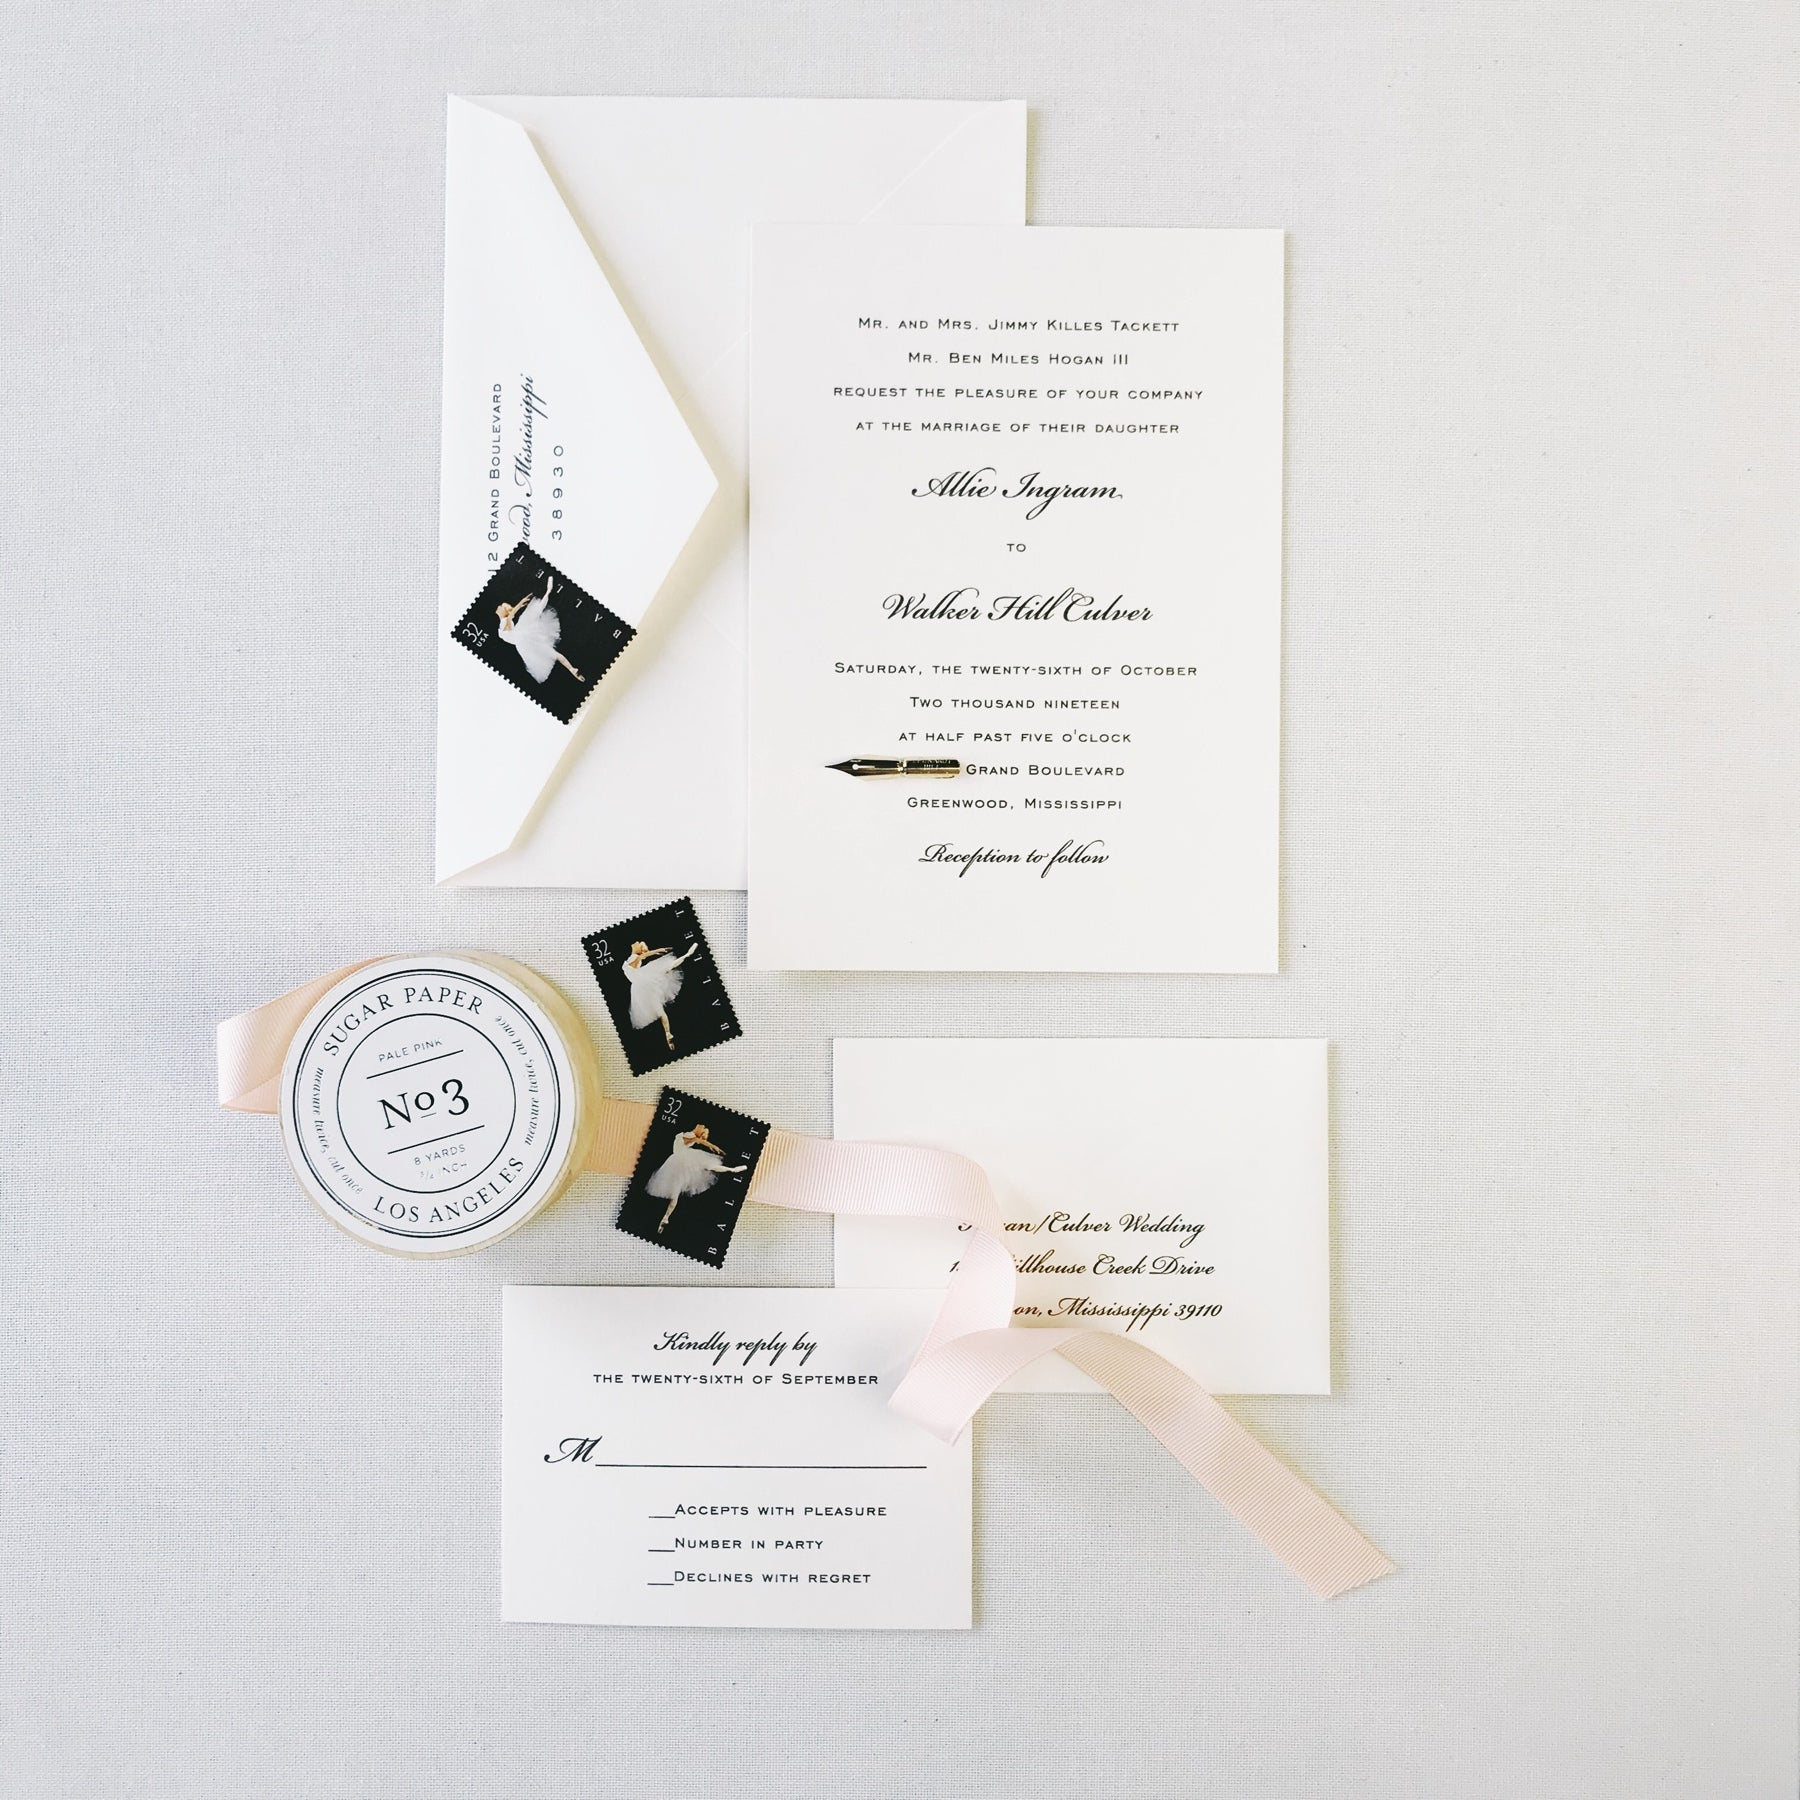 Hogan Wedding Invitation - Deposit Listing